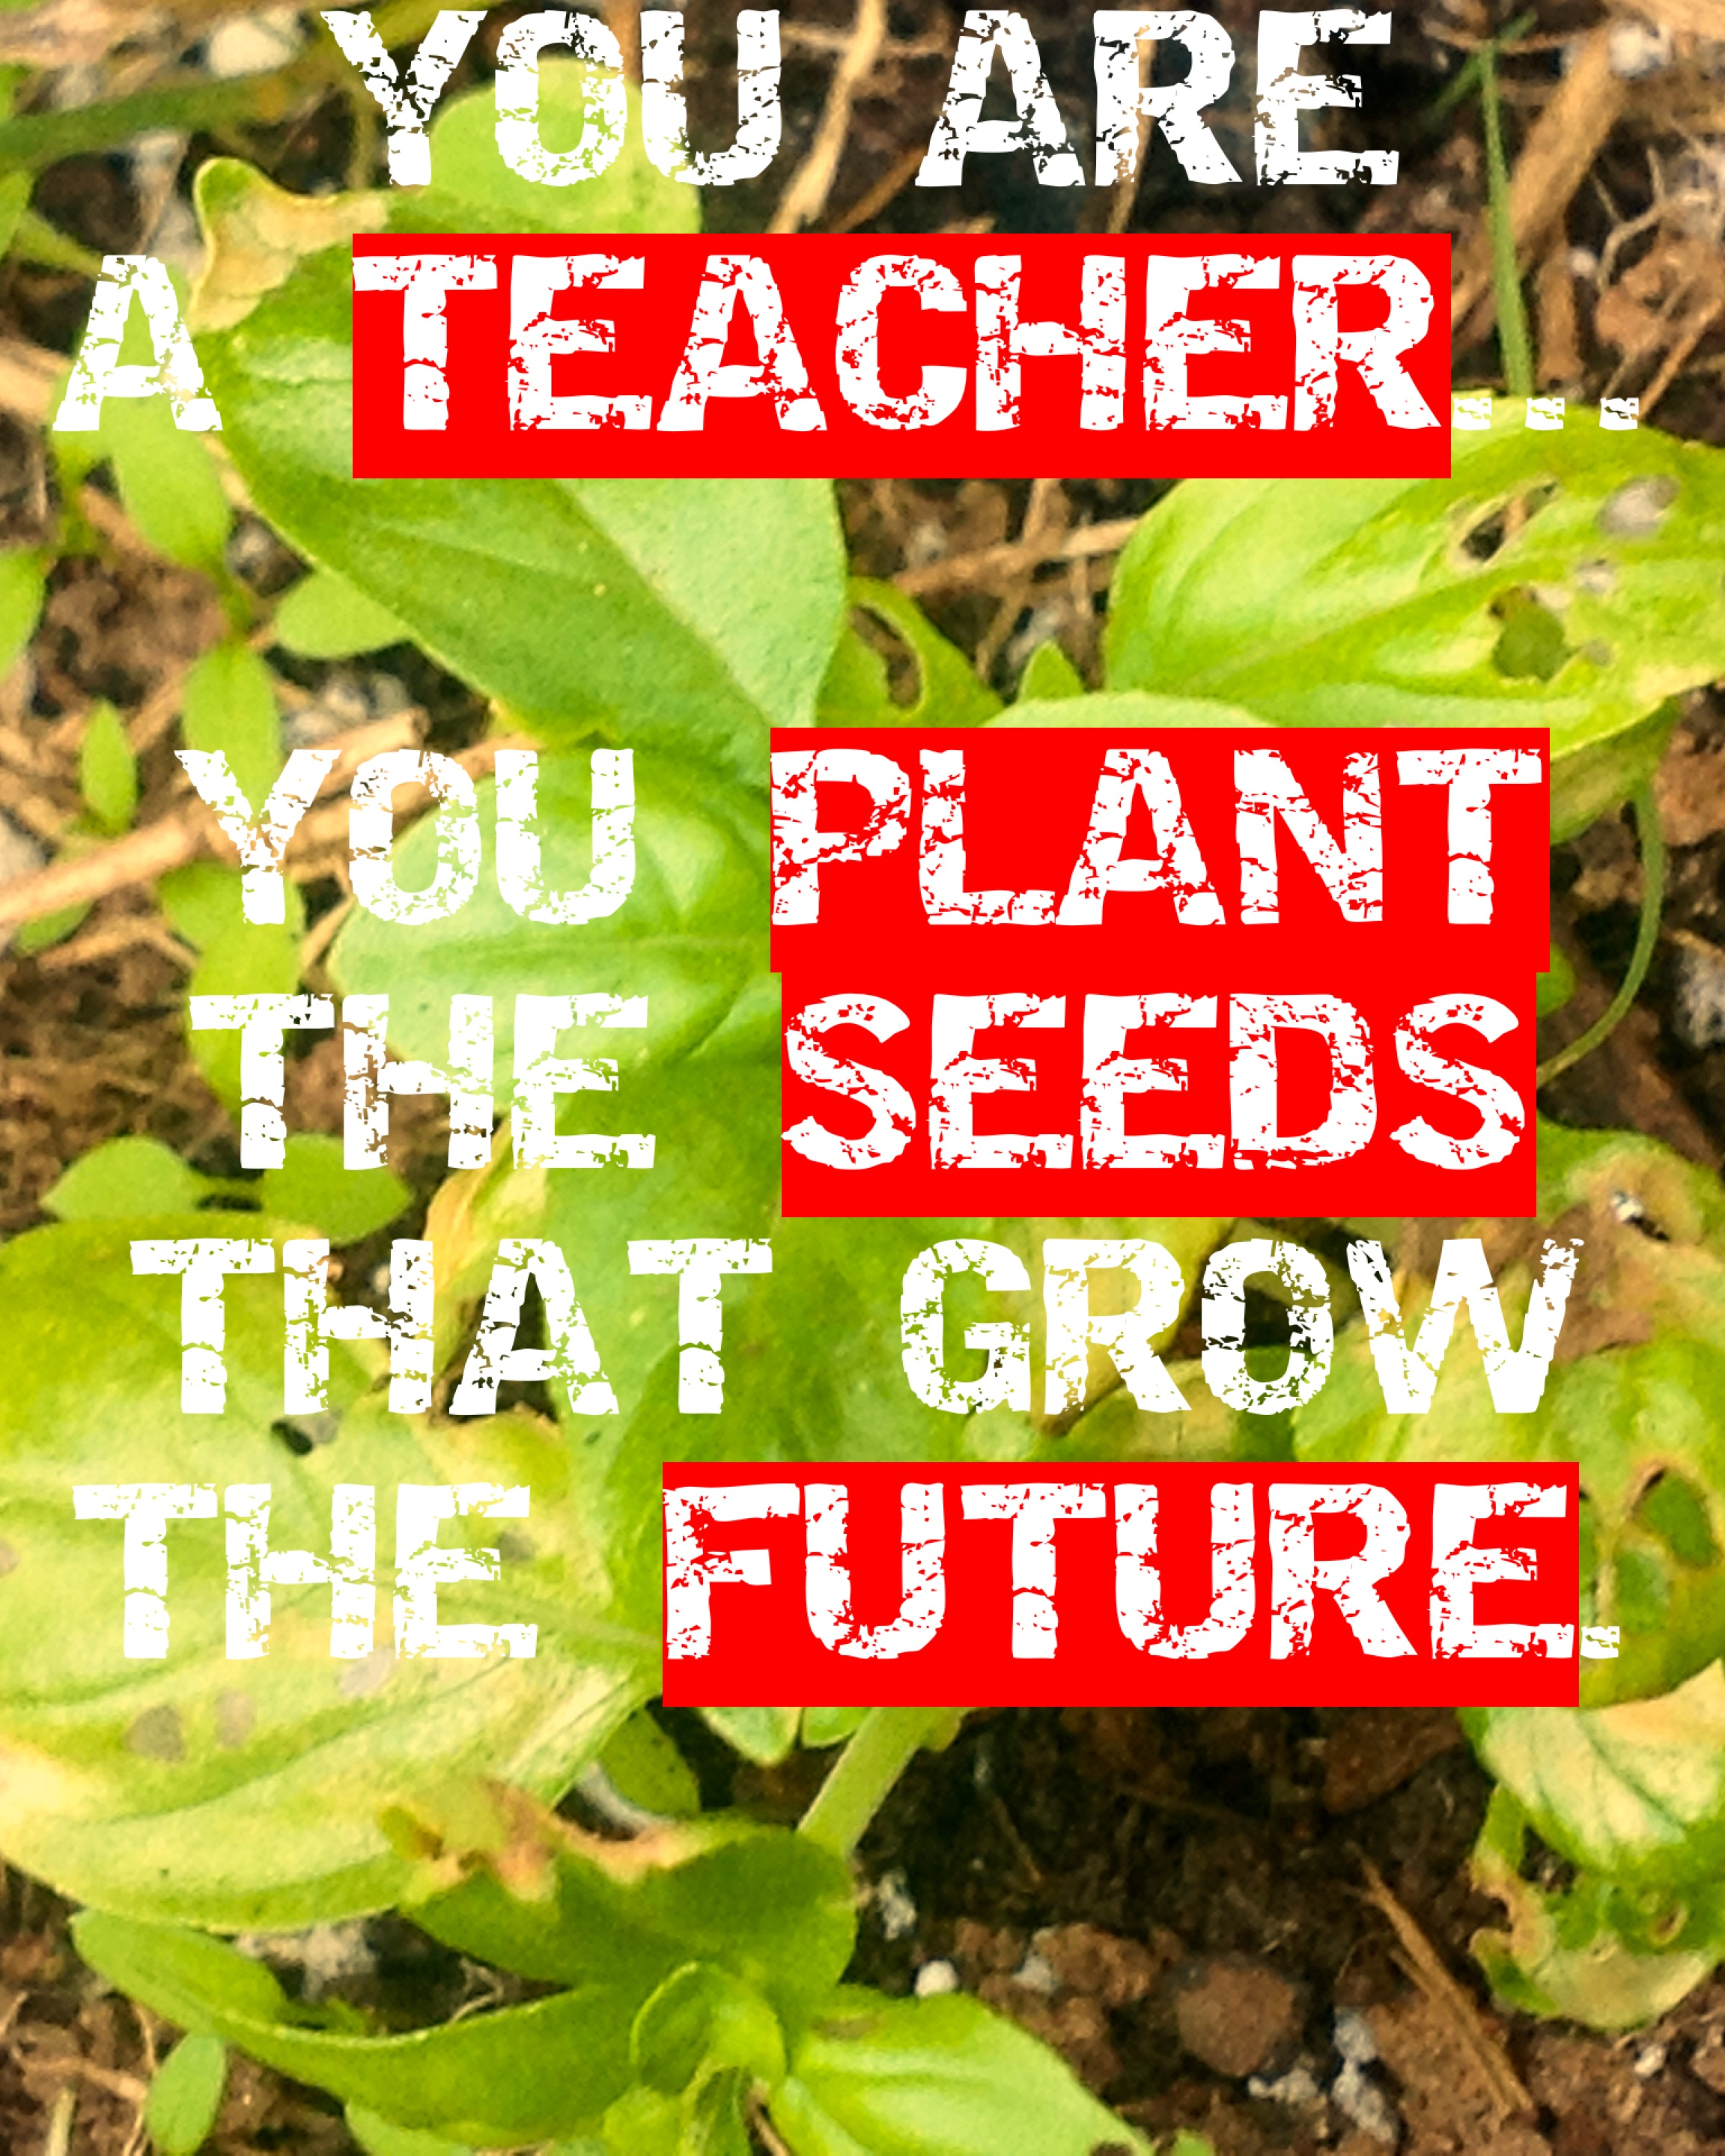 Quotes About Teachers Planting Seeds: (c)DearTeacherLT2013 (You May Use The Image If You Link